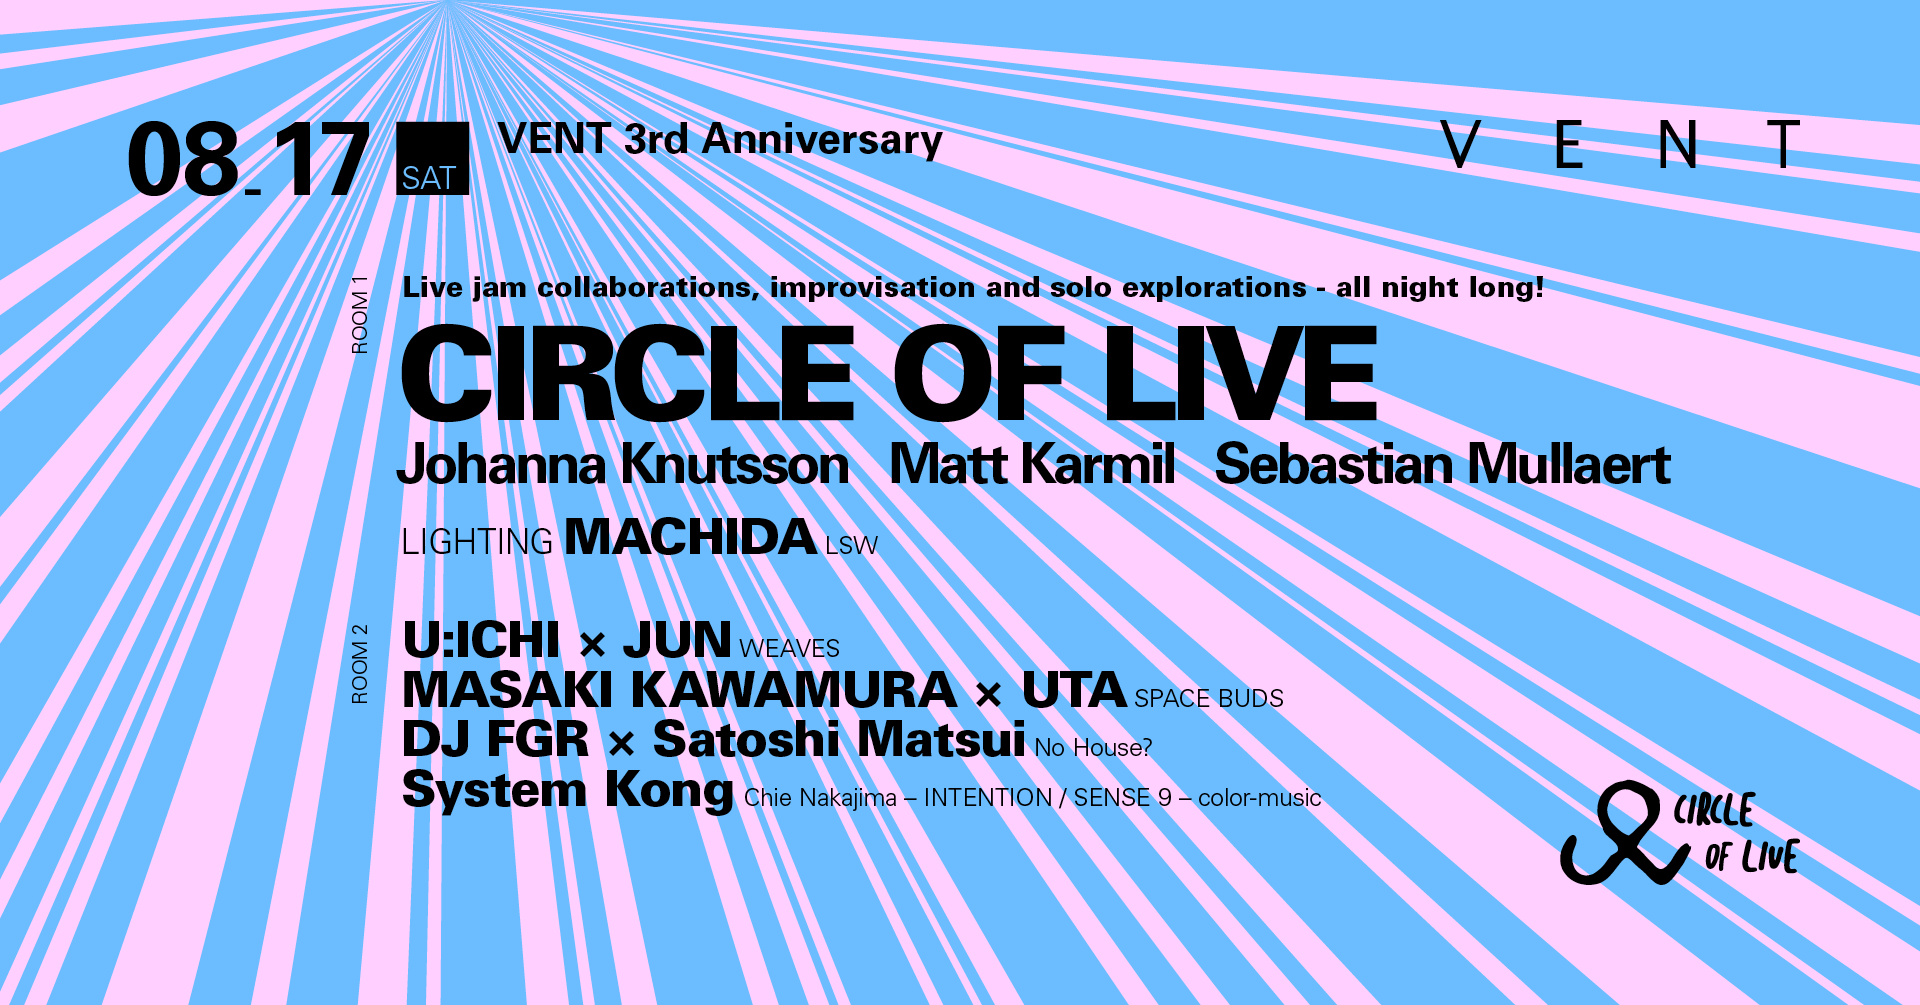 VENT 3rd Anniversary: Day 1 Feat. Circle Of Live